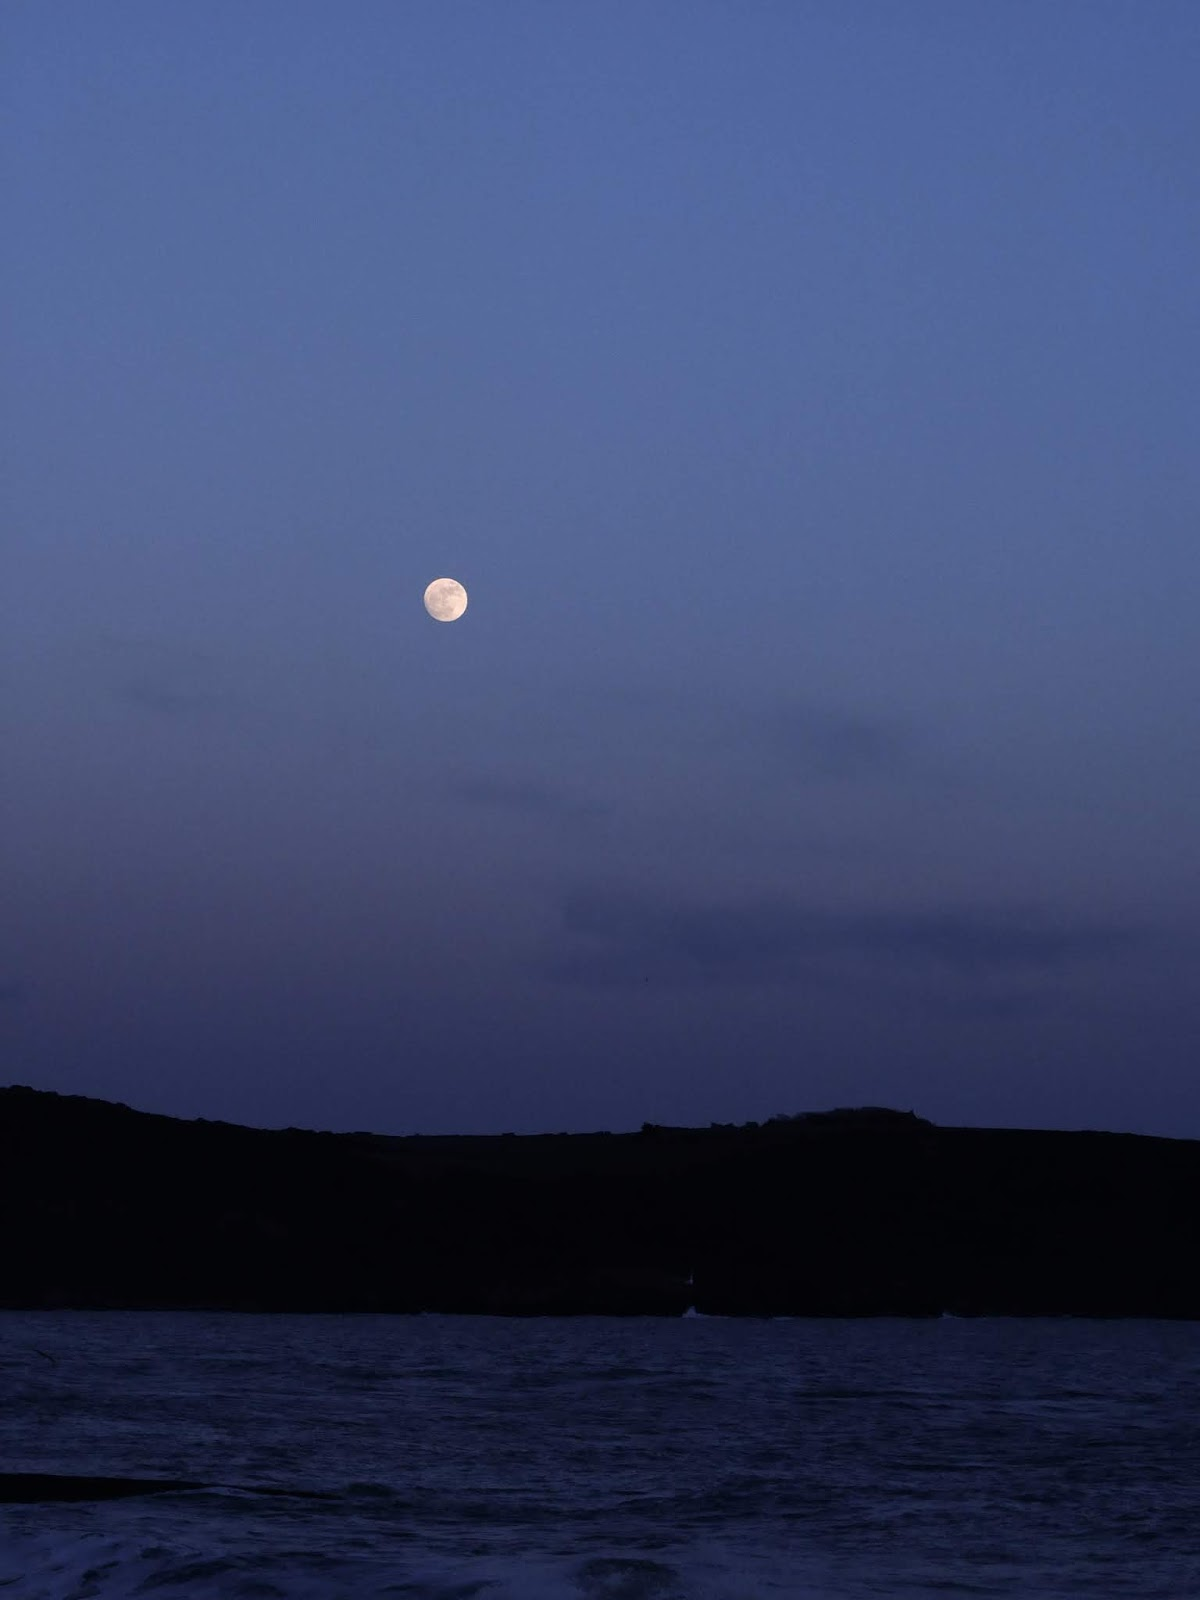 Moon rise during blue hour over the ocean in Youghal, Co.Cork.